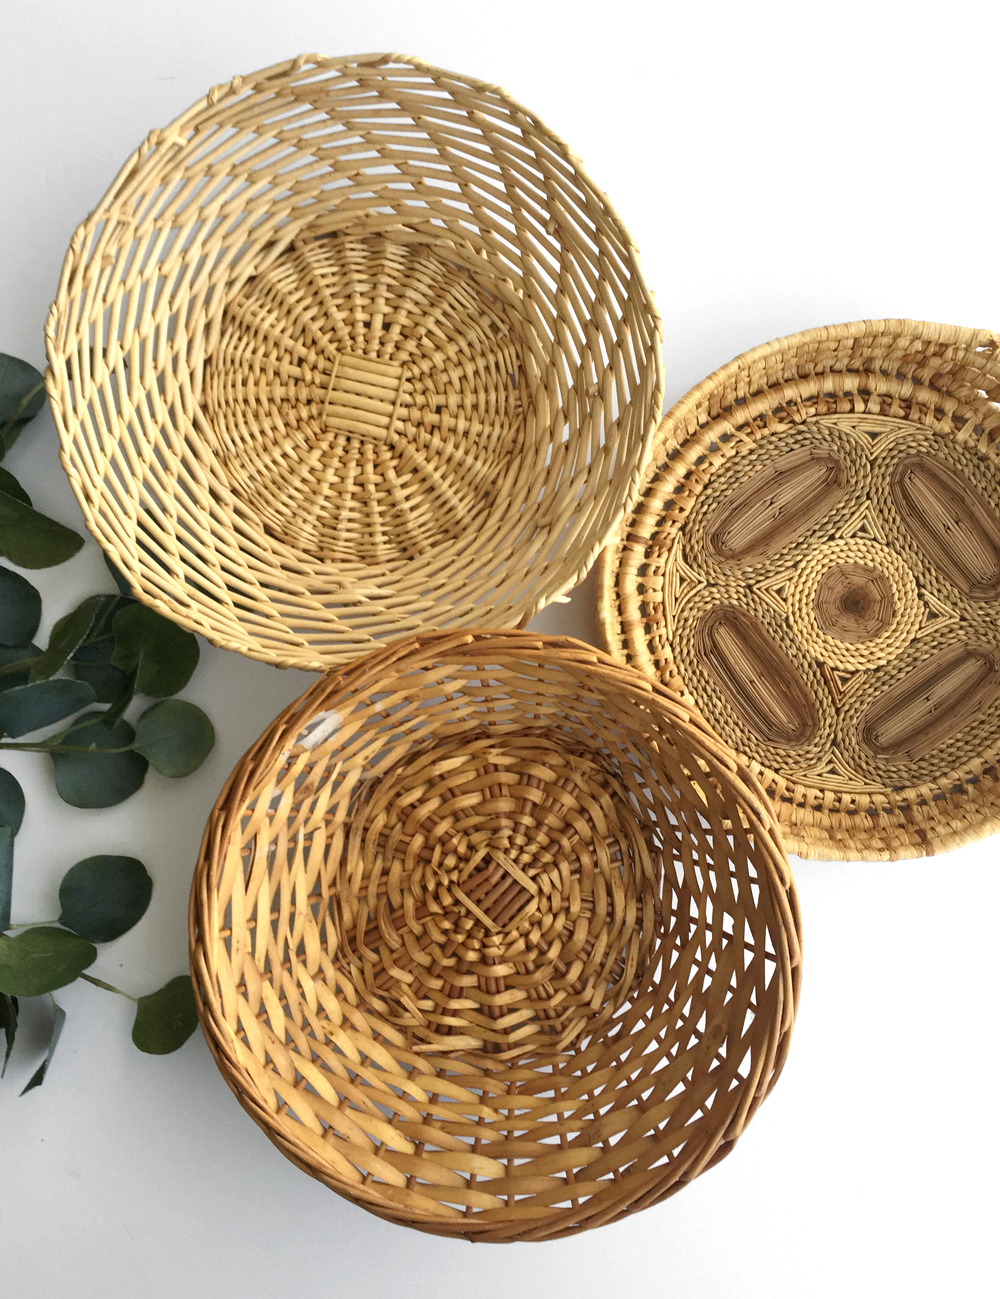 "Group of decorative baskets perfect for boho wall decor. Made of natural materials - all measure around 12"" wide. Two baskets are 4"" deep and more intricate basket is 2.5"" deep."